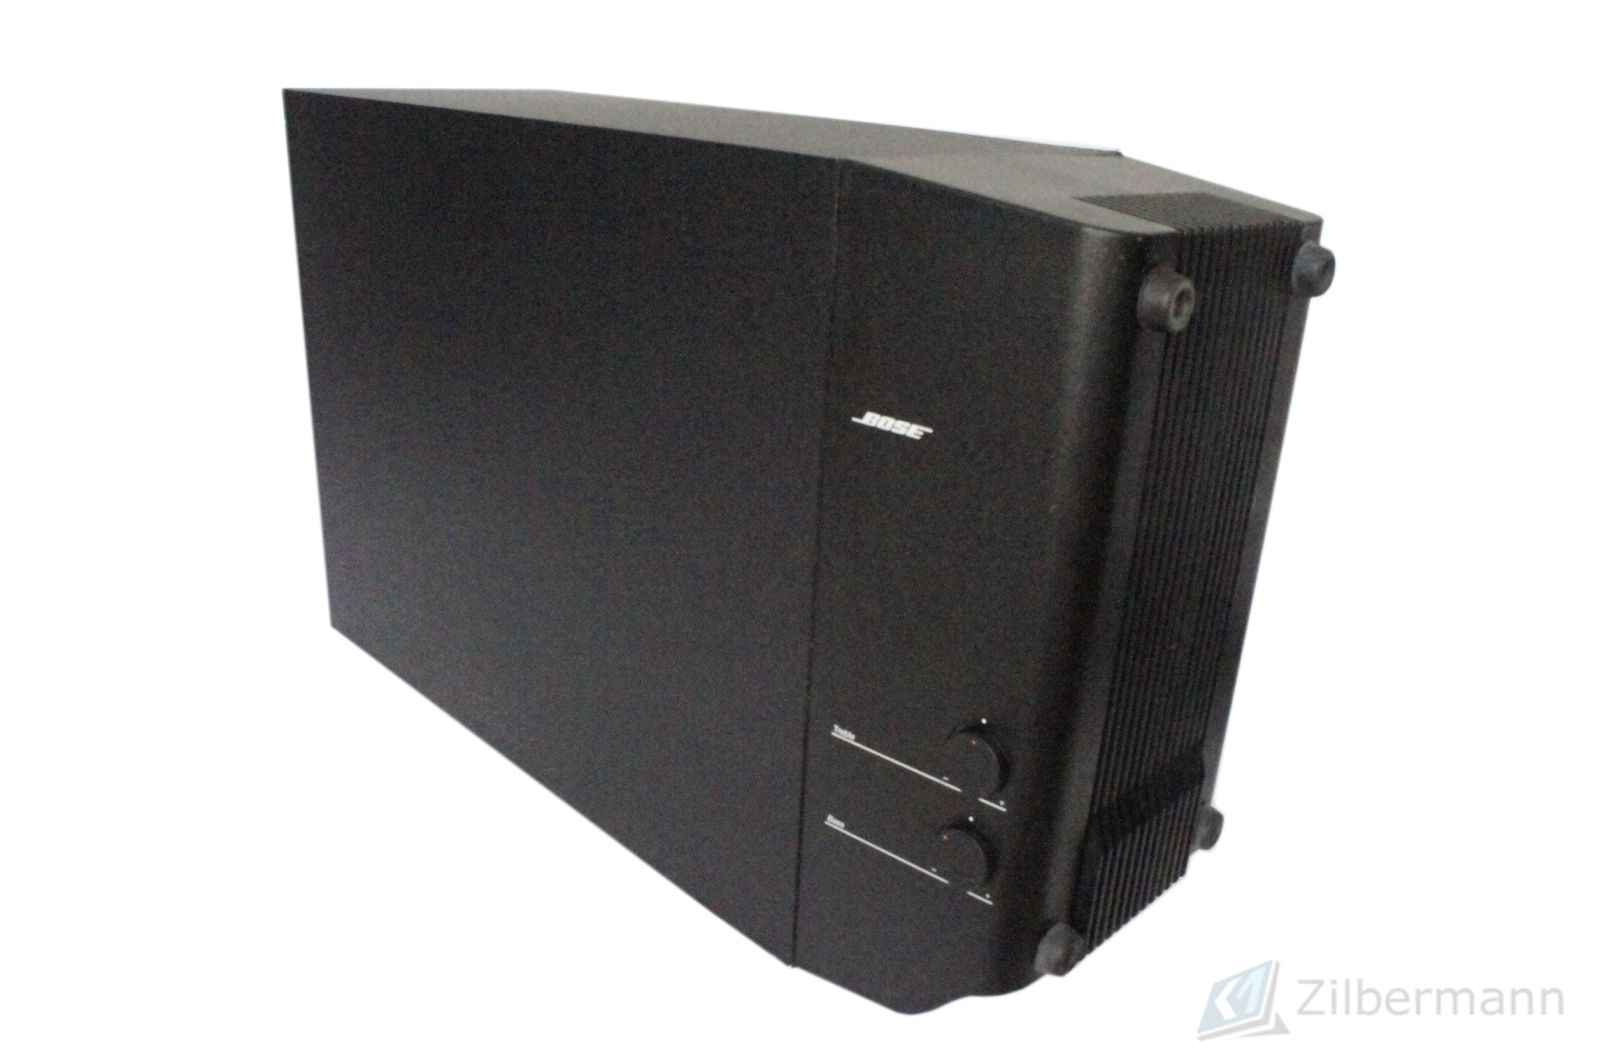 Bose_Acoustimass_30_Series_II_Powered_Subwoofer_04